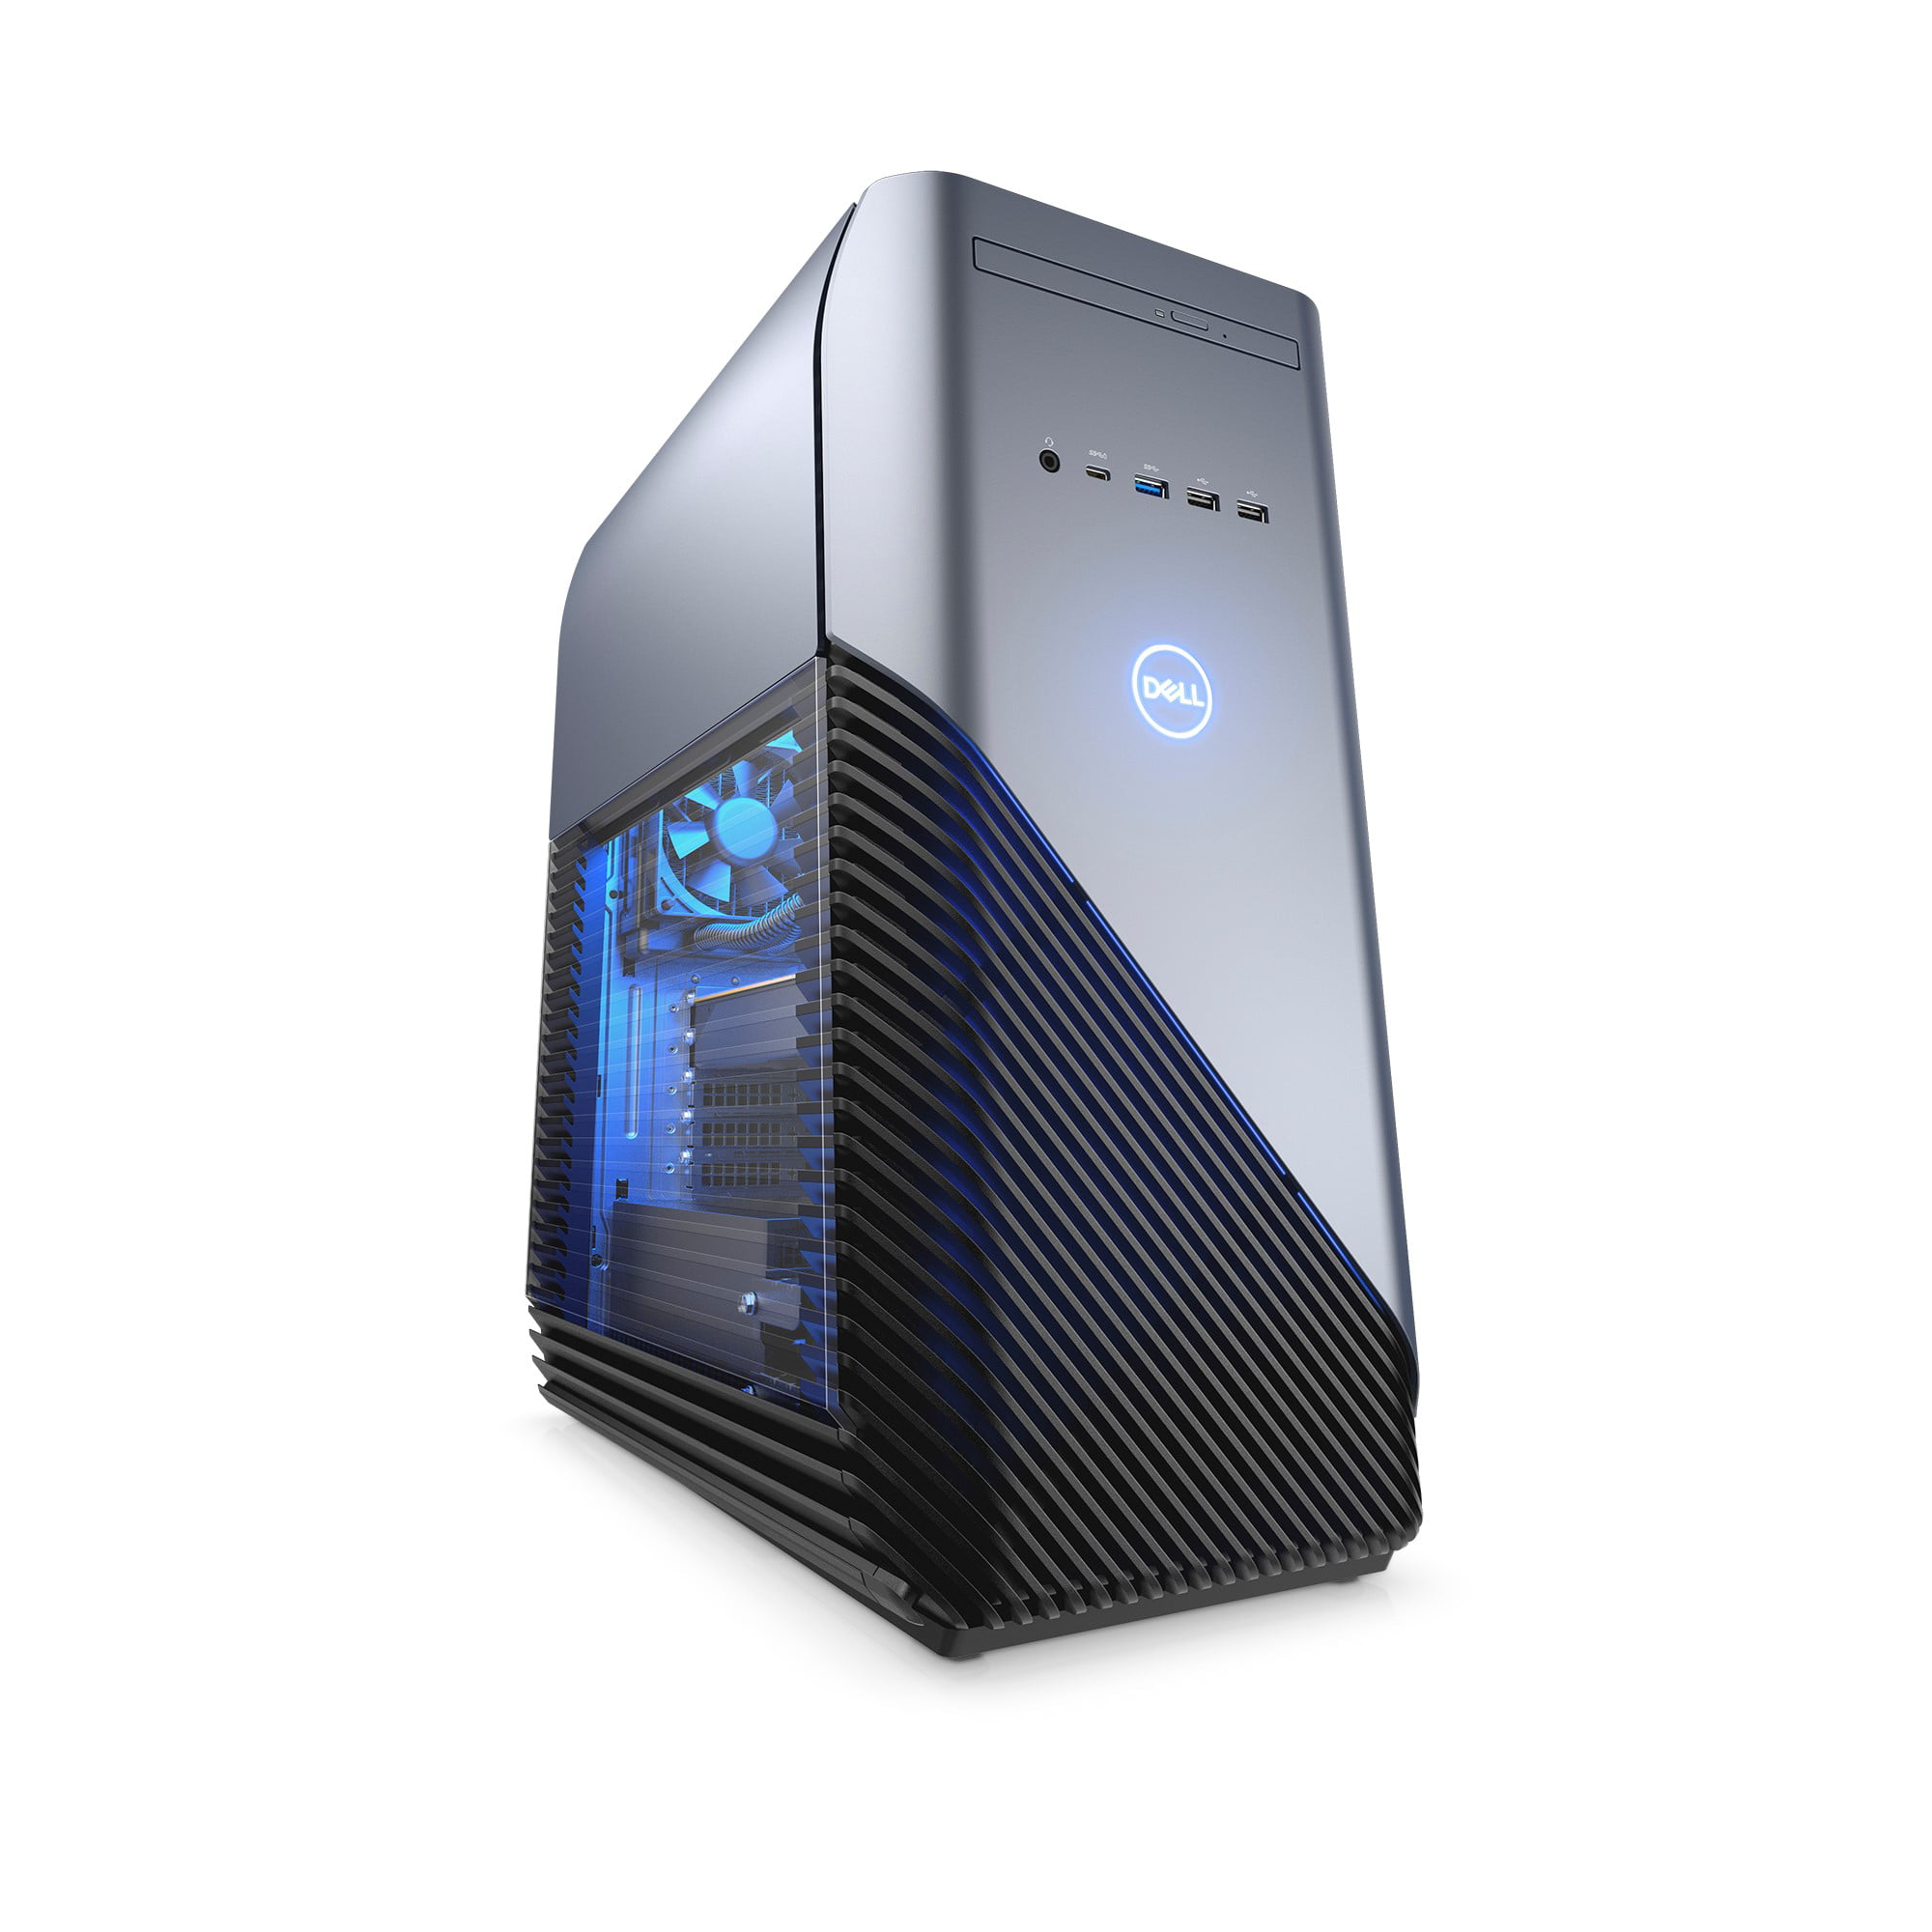 Dell Inspiron Gaming Desktop 5680, Intel Core i5+ 8400, NVIDIA GeForce GTX 1060, 16GB M.2 PCIe Intel Optane... by Dell